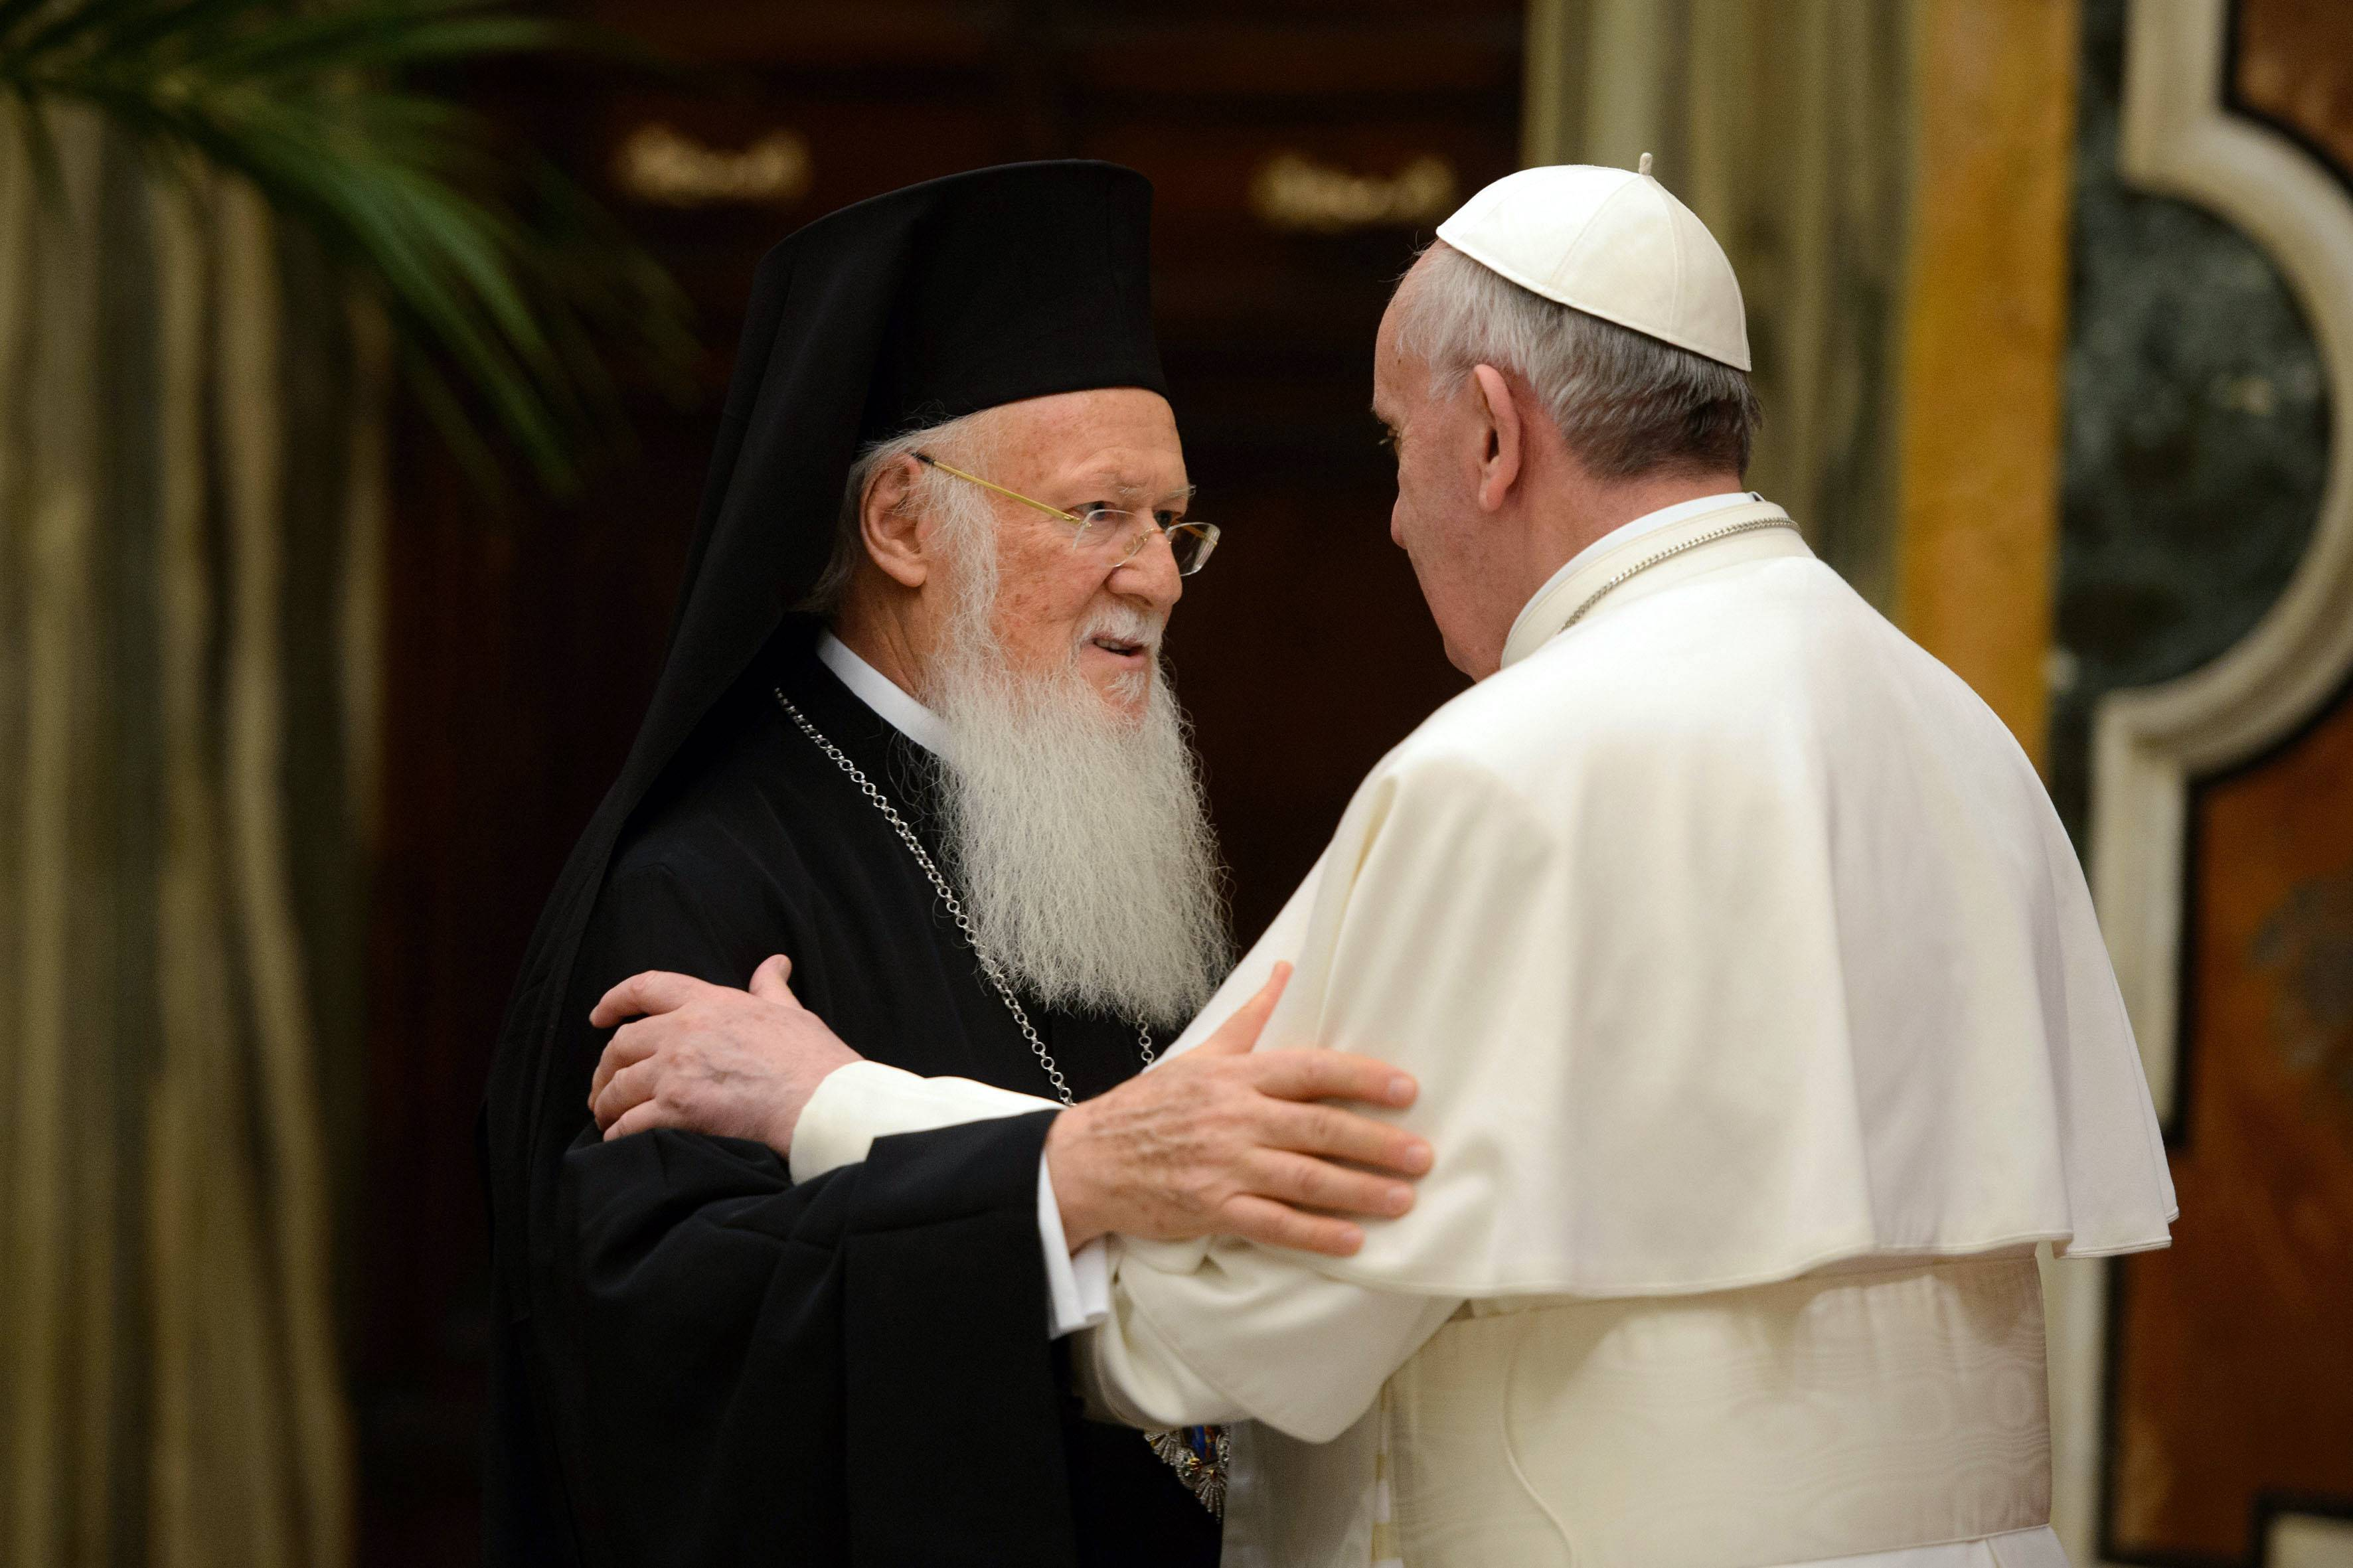 Pope Francis meets Bartholomew I, the first ecumenical patriarch to attend the installation of a Pope since the Catholic and Orthodox church split nearly 1,000 years ago, at the Vatican.